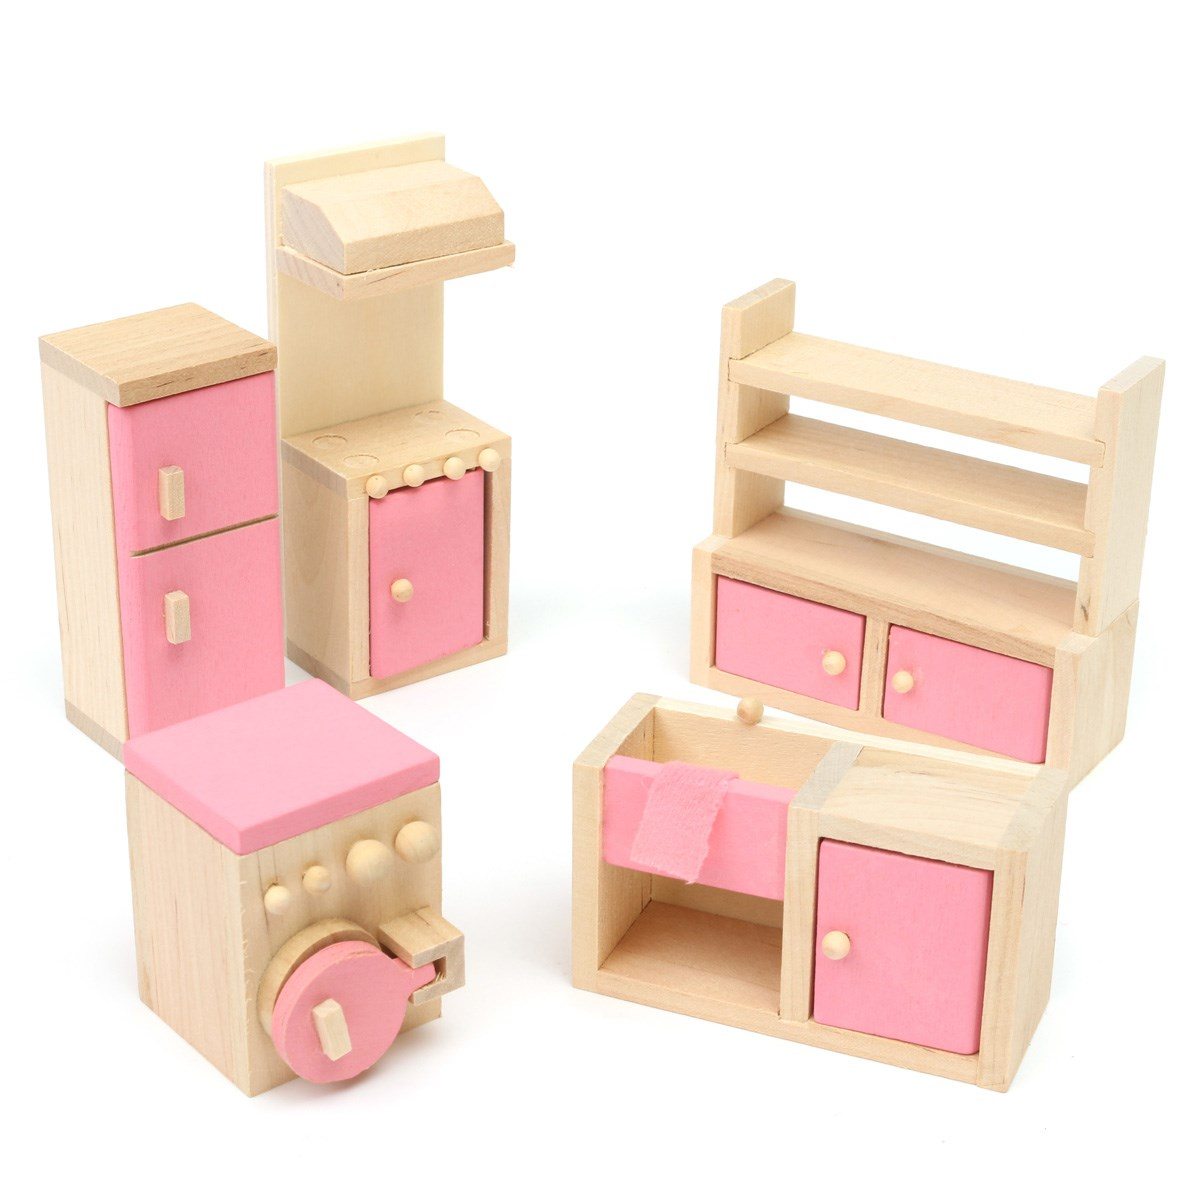 cheap wooden dollhouse furniture. Wooden Delicate Dollhouse Furniture Toys Miniature For Kids Children Pretend Play 6 Room Set/4 Dolls Toys-in From \u0026 Hobbies On Cheap D